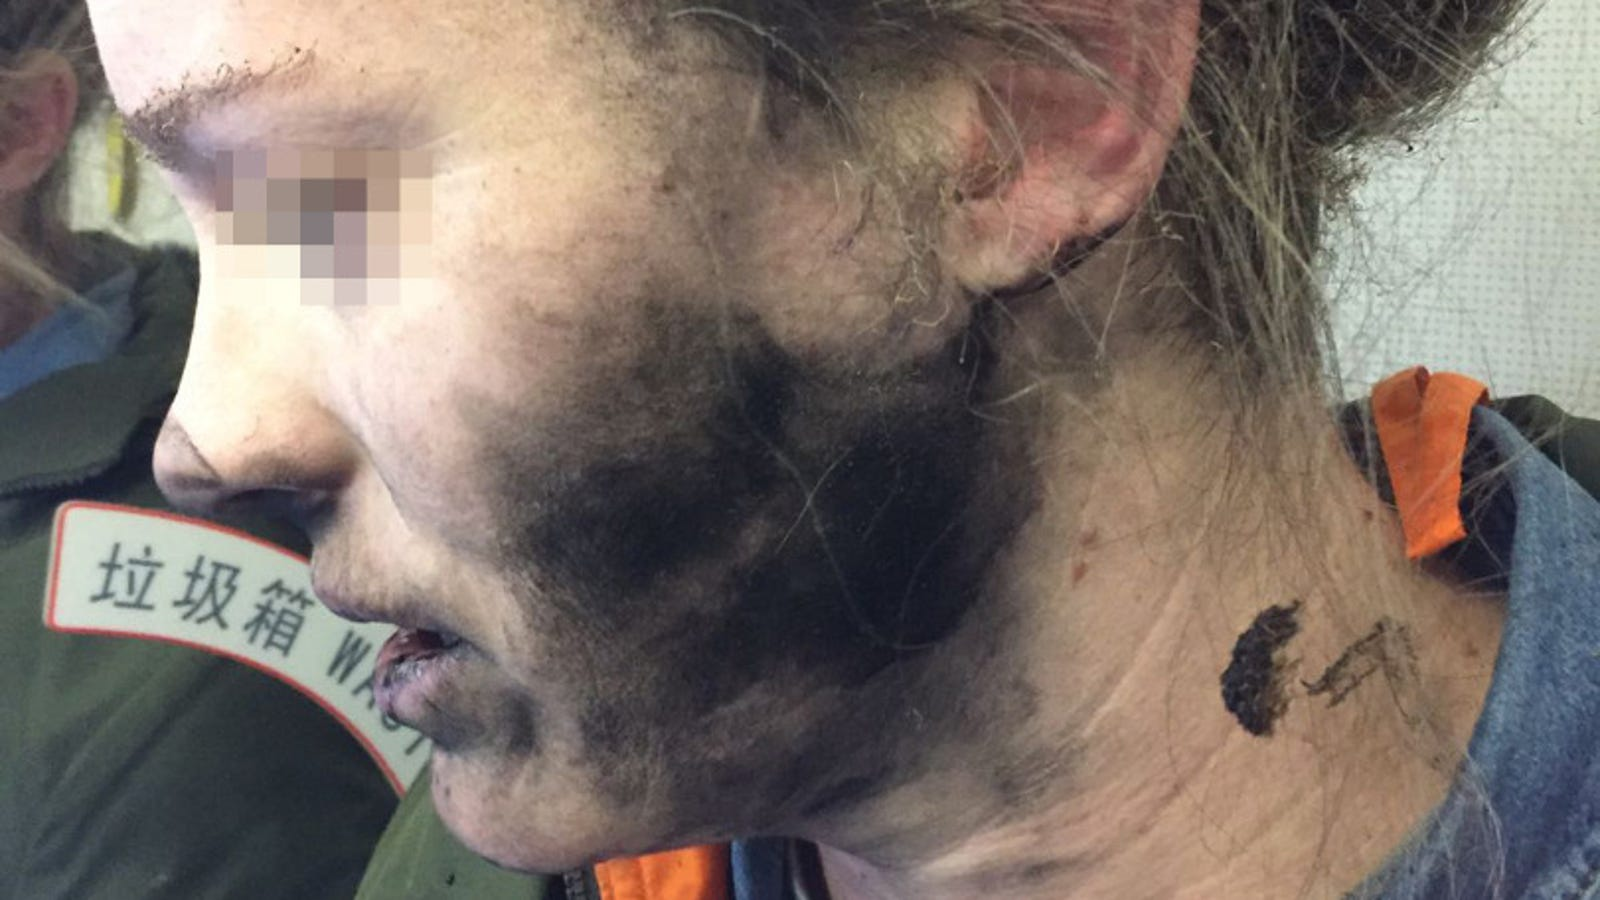 orange wireless bluetooth headphones - This Is What Happens When Your Headphones Explode on an Airplane [GRAPHIC]